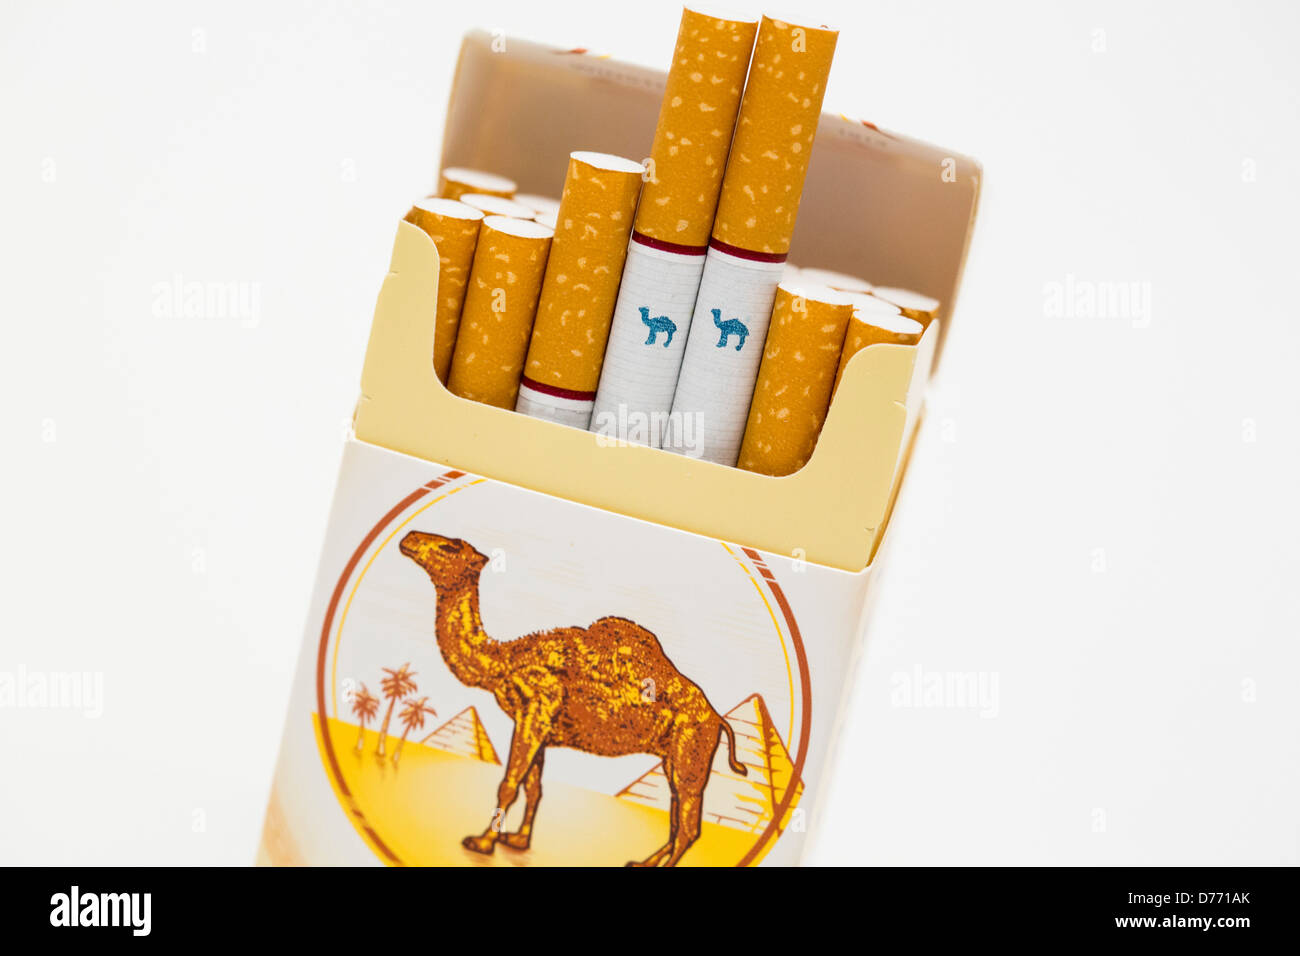 Can you buy cigarettes Marlboro UK